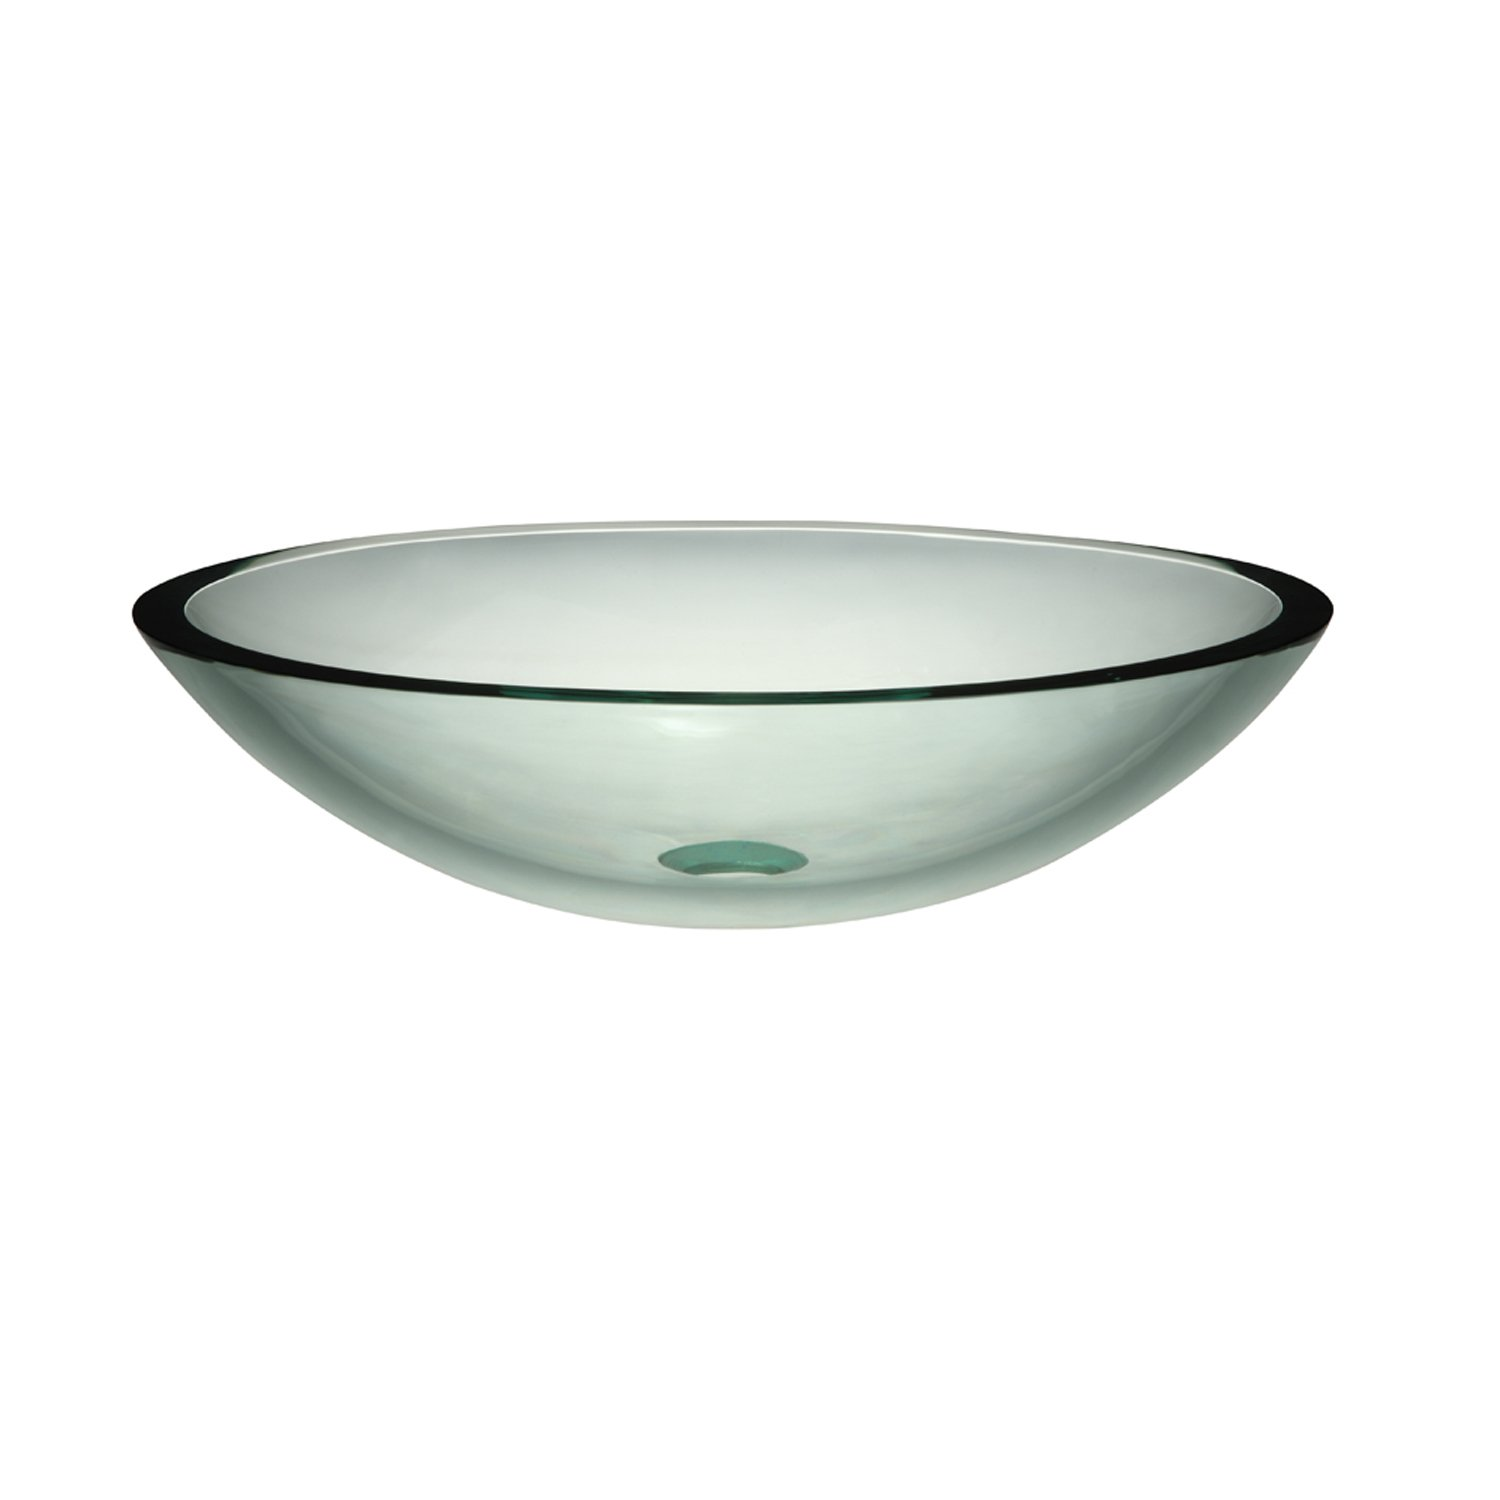 DECOLAV 1129T TCR Ela Translucence Oval 19mm Tempered Glass Vessel Sink   Transparent Crystal     Amazon com. DECOLAV 1129T TCR Ela Translucence Oval 19mm Tempered Glass Vessel